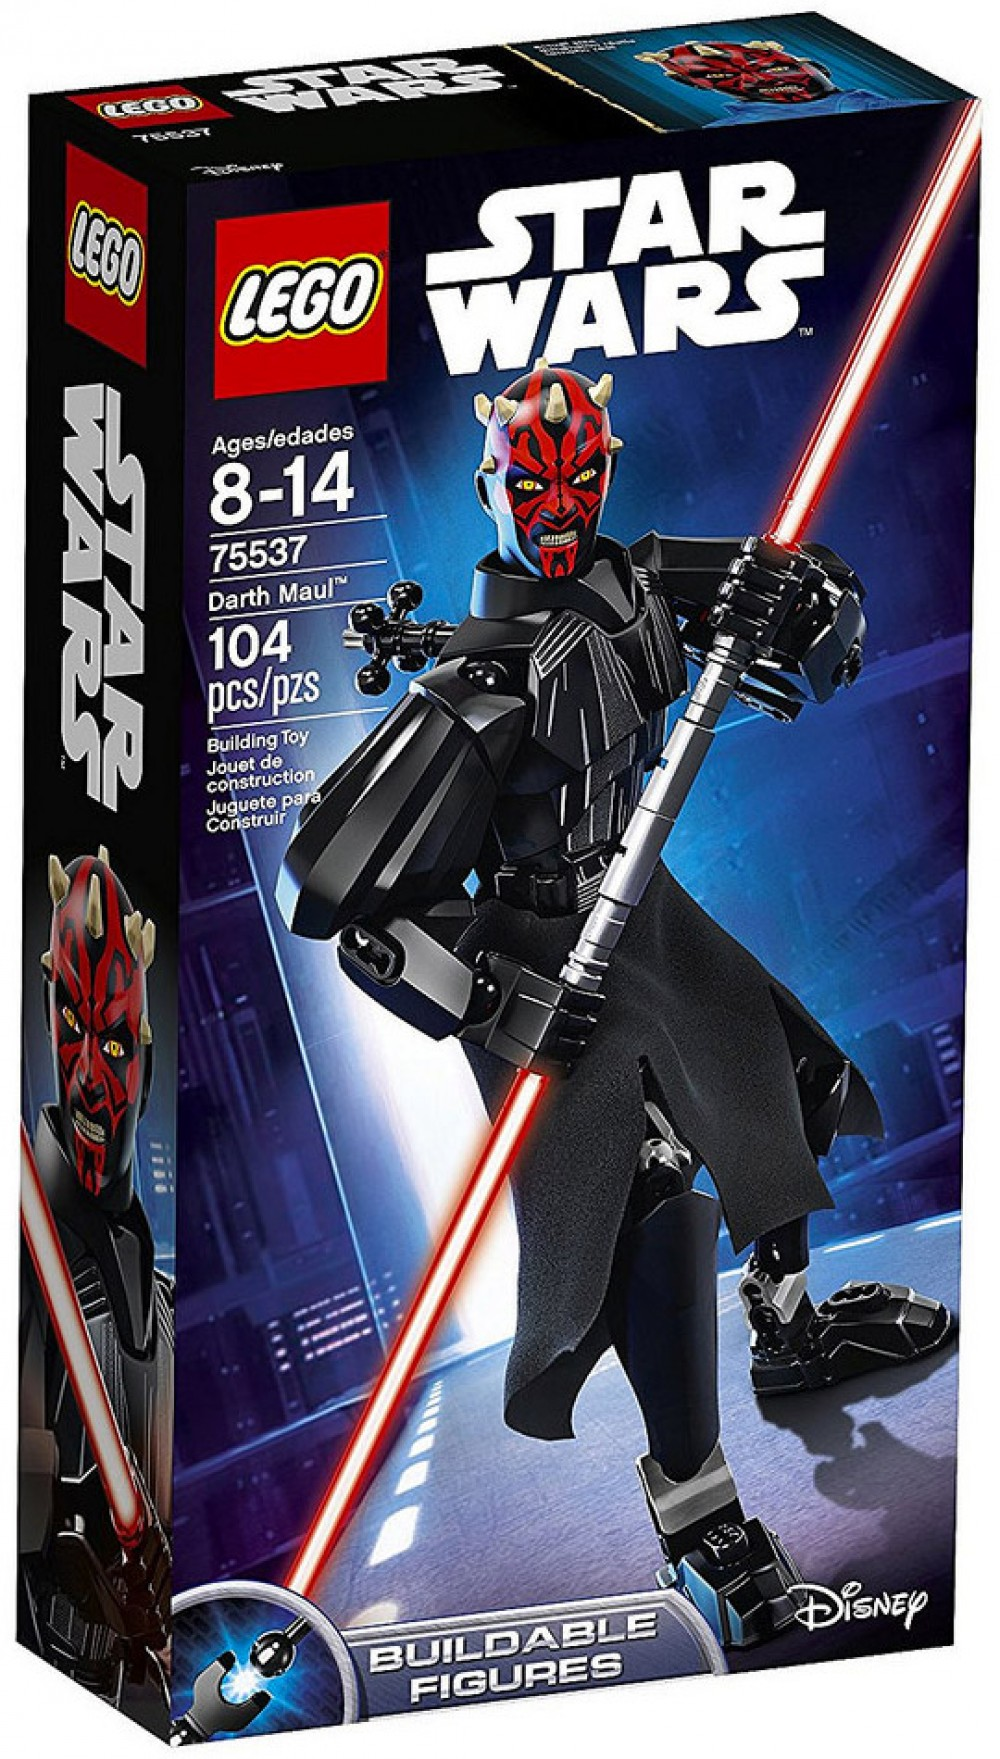 Nouveau LEGO Star Wars 75537 Darth Maul (Buildable Figures) 2018